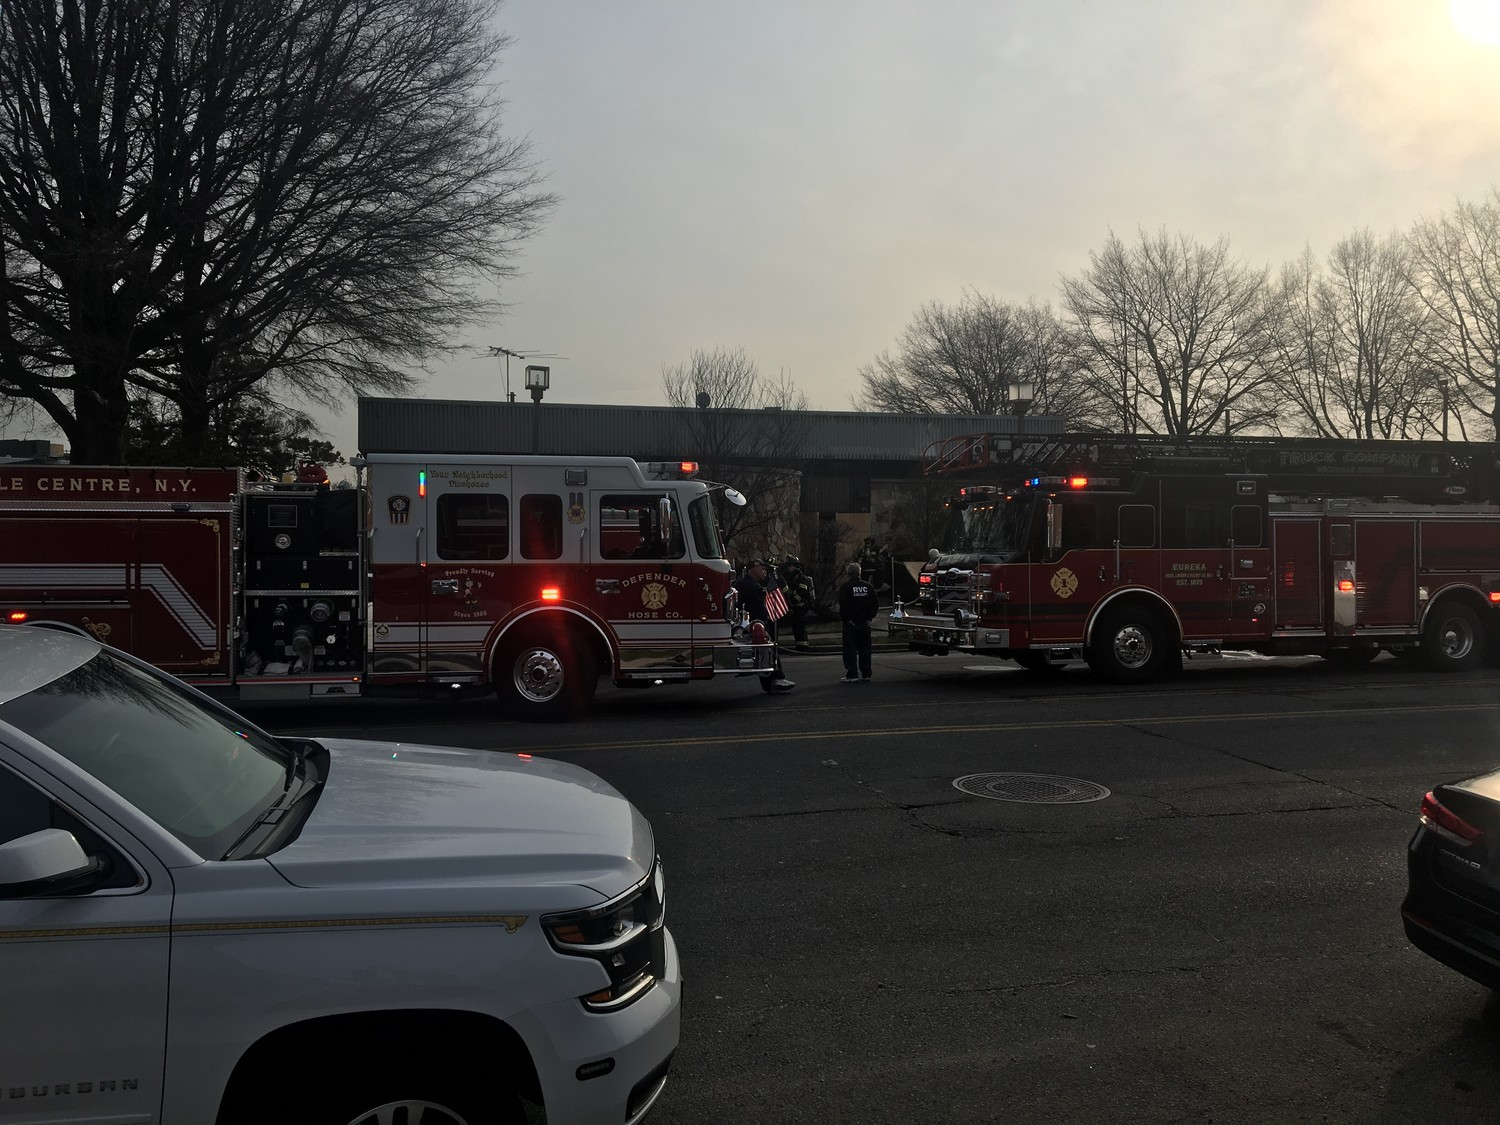 Firefighters responded to the scene on the morning of April 12.